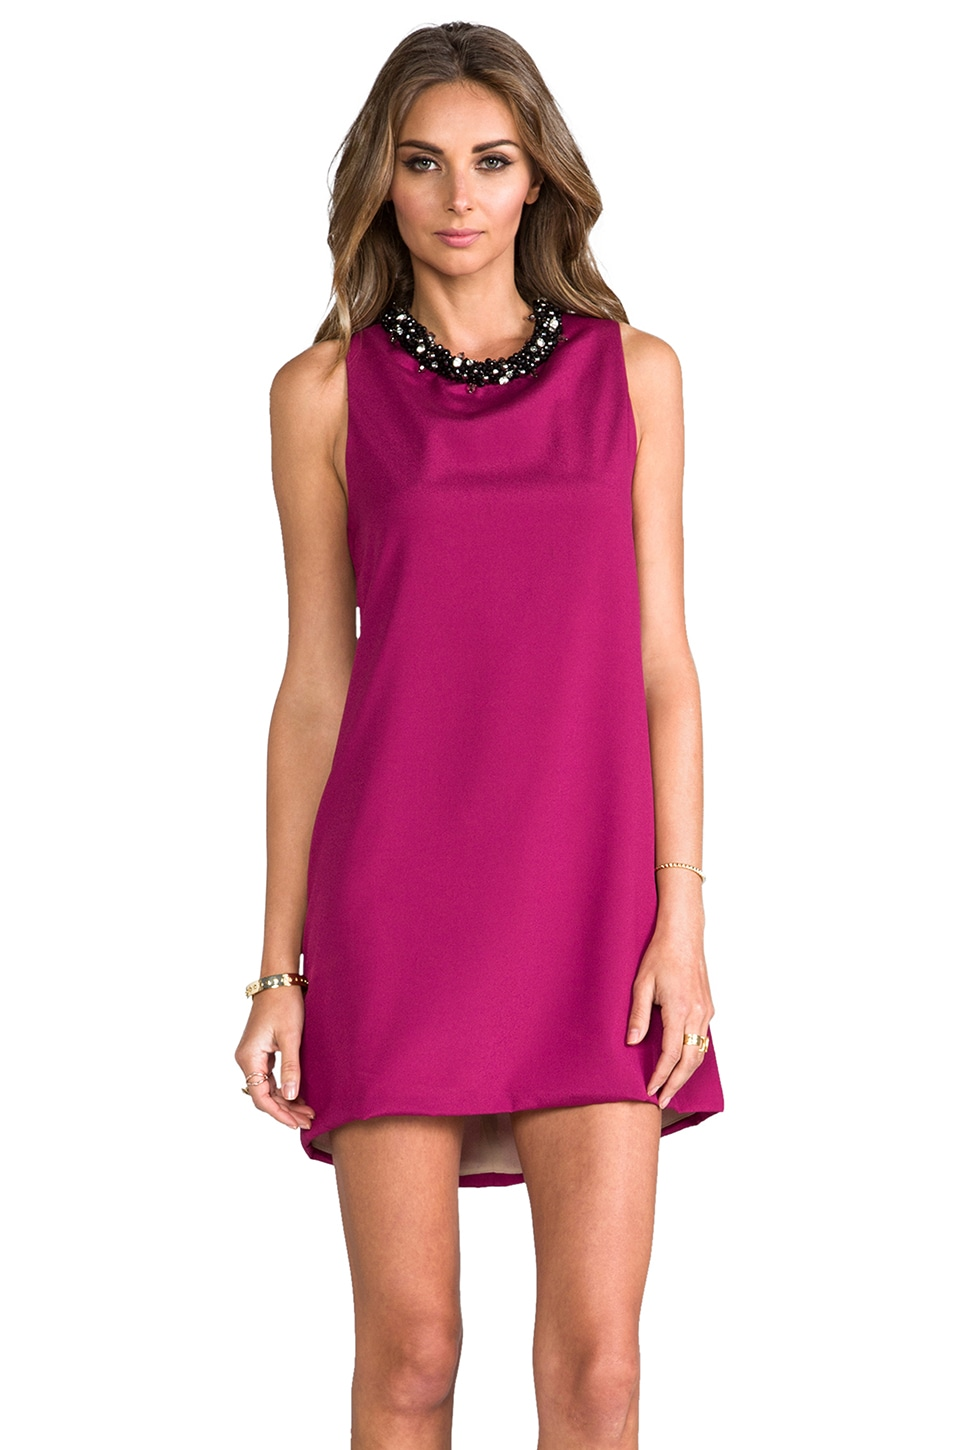 Naven Glam Twiggy Dress in Poison Berry